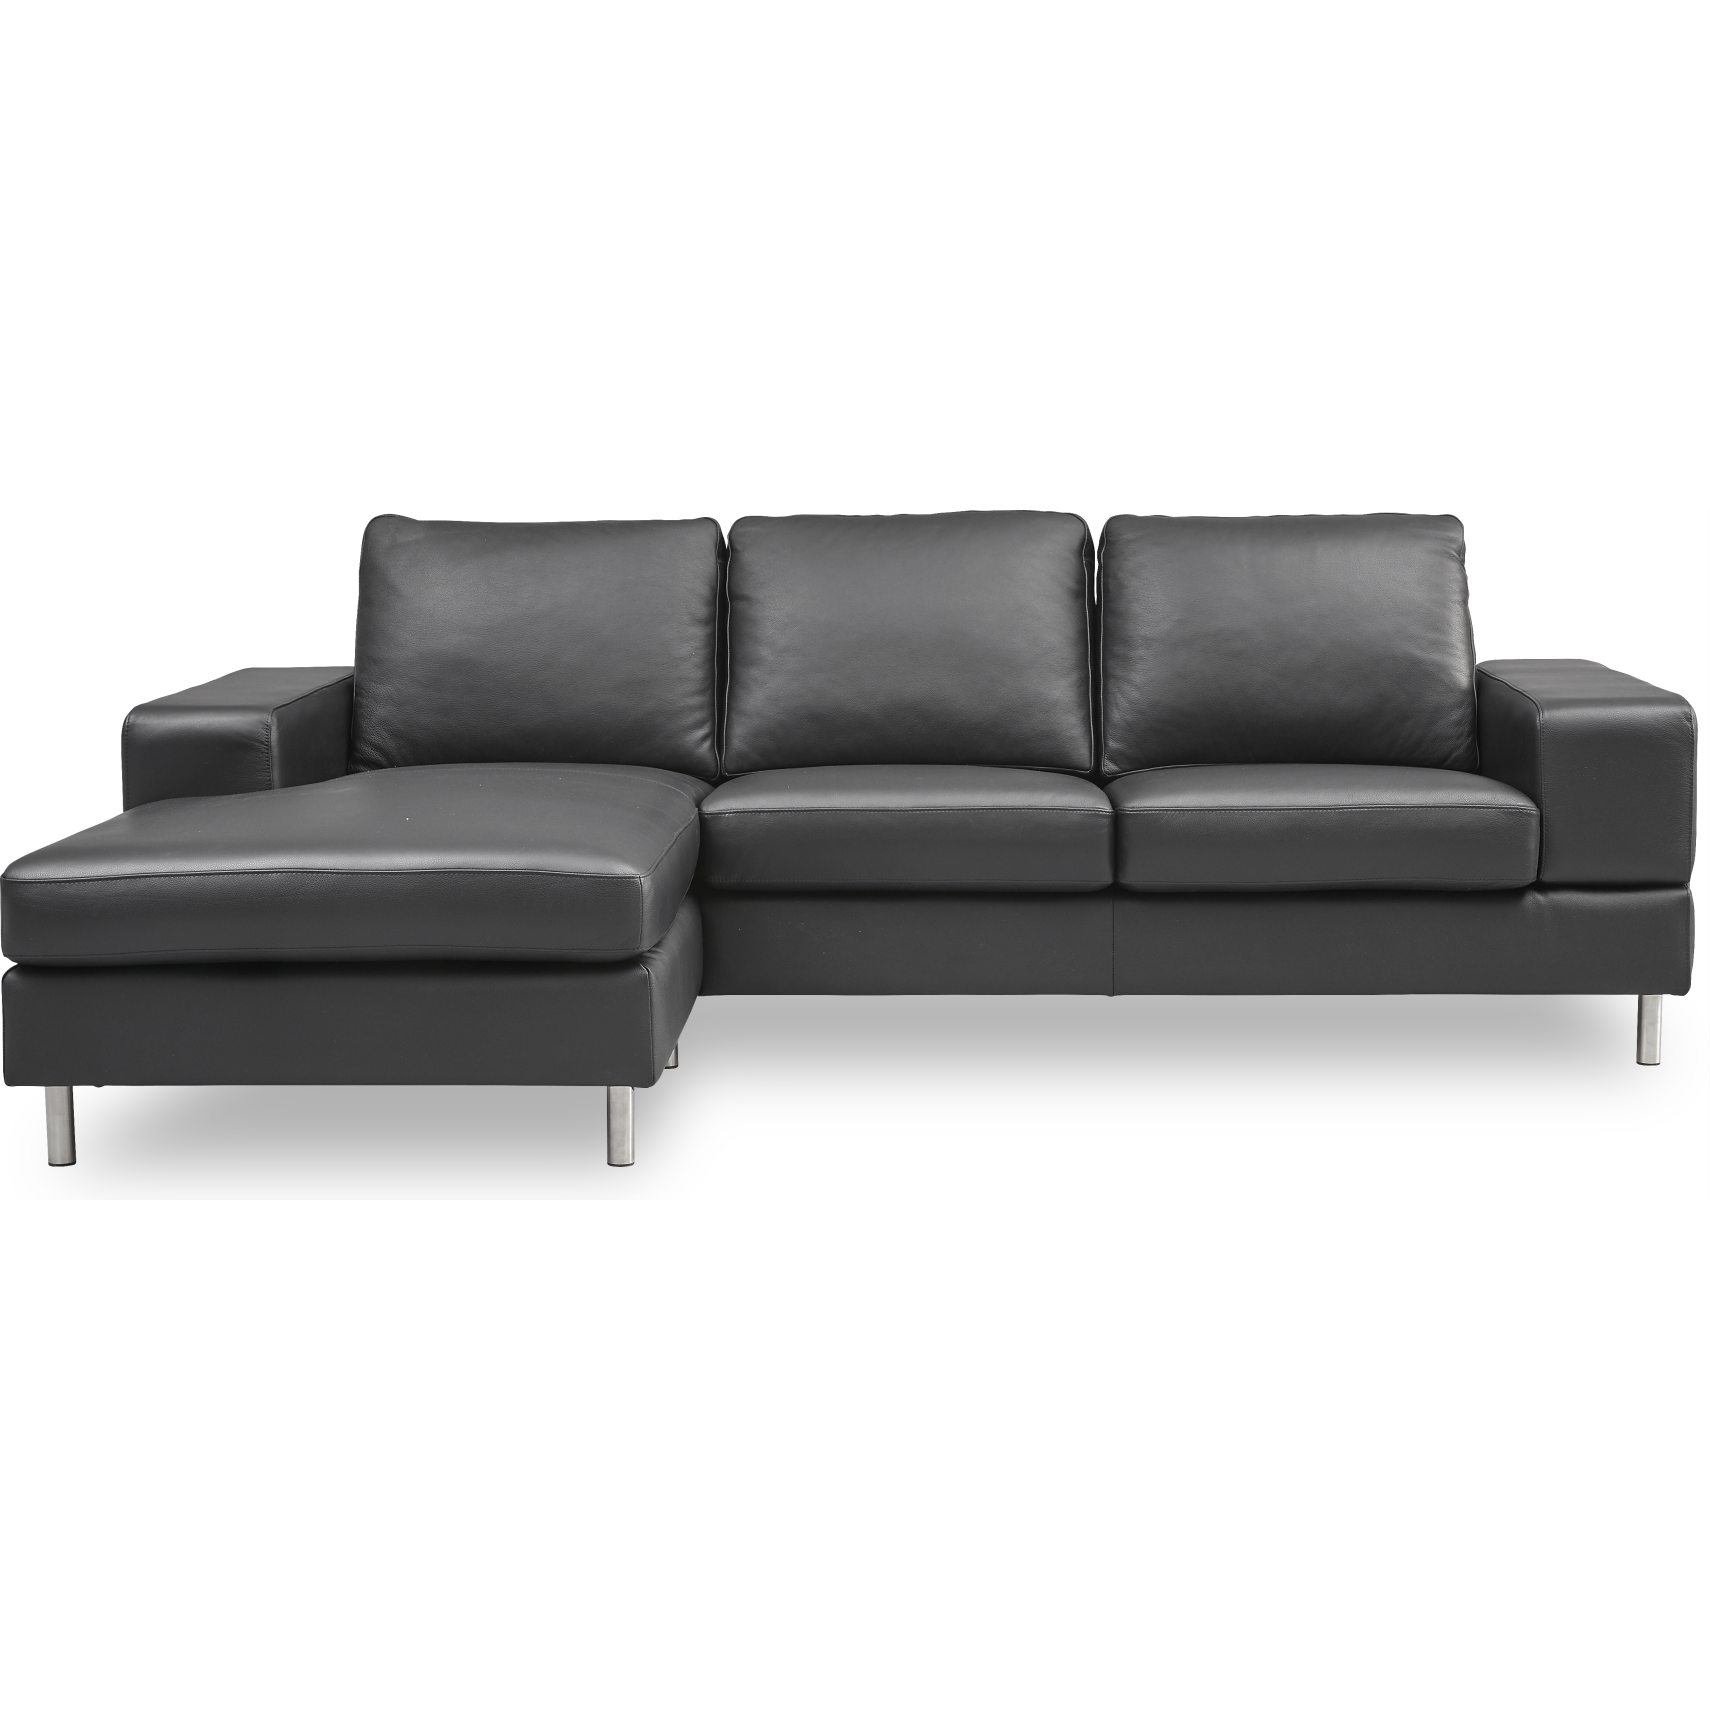 umbria lux sofa med chaiselong 13424 25 dkk tilbud. Black Bedroom Furniture Sets. Home Design Ideas